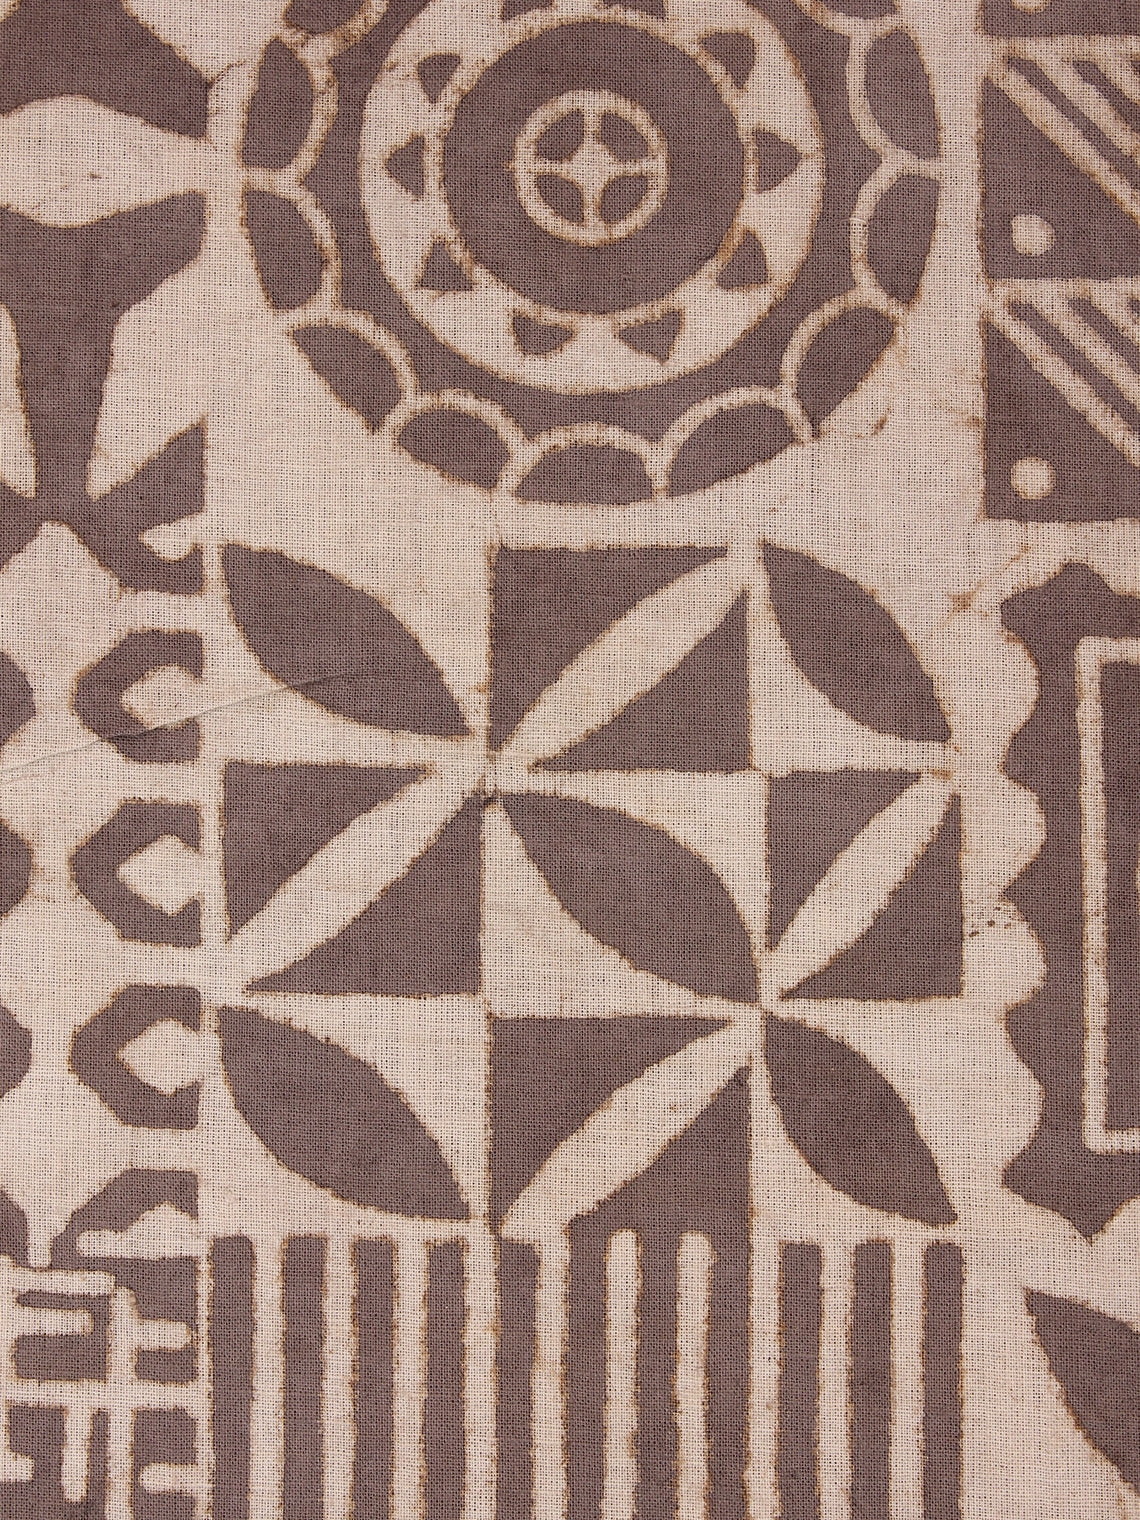 Brown Beige Natural Dyed Hand Block Printed Cotton Fabric Per Meter - F0916048